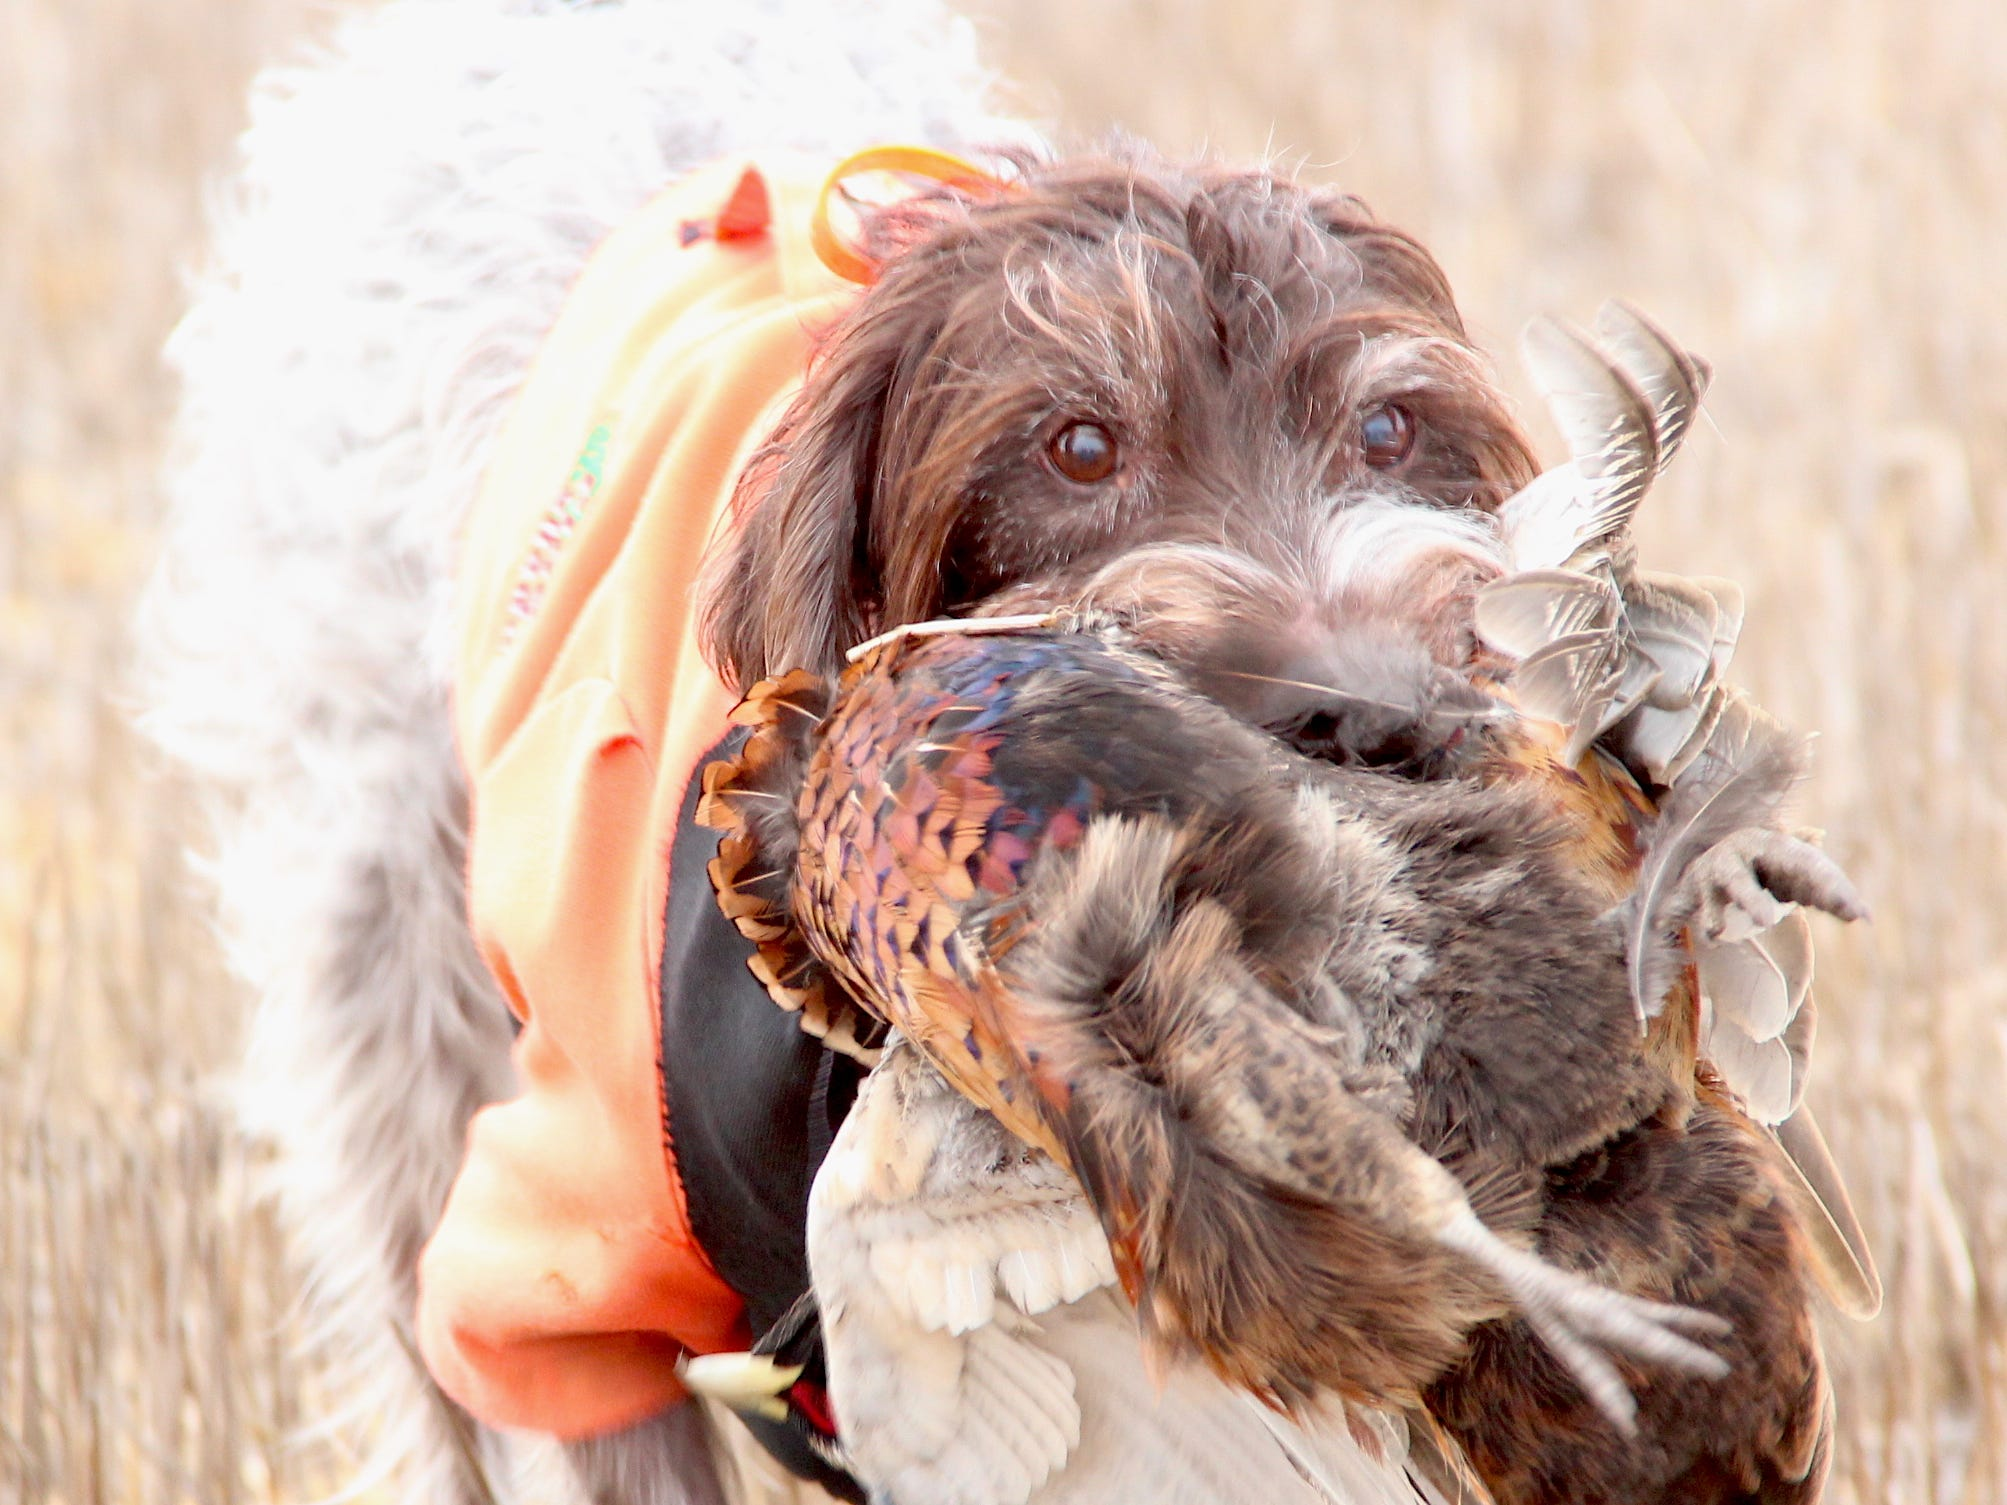 Gretchen, a 13-year-old wirehaired pointing griffon owned by Casey Weismantel of Aberdeen, South Dakota, retrieves a ring-necked pheasant during a hunt near Aberdeen.